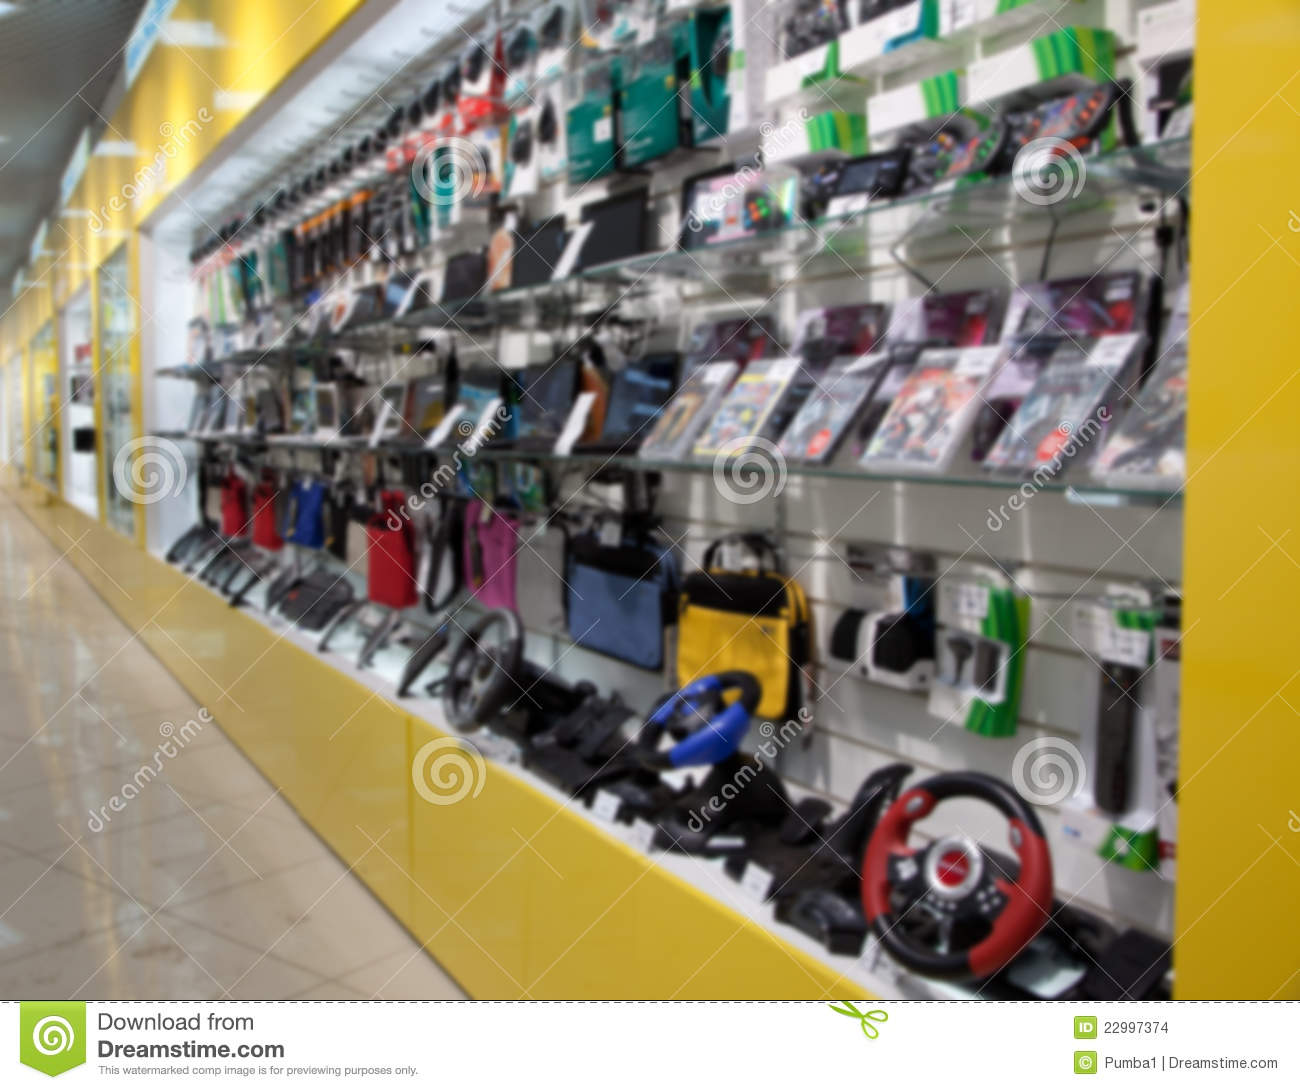 Electronic gadget in store. Blured